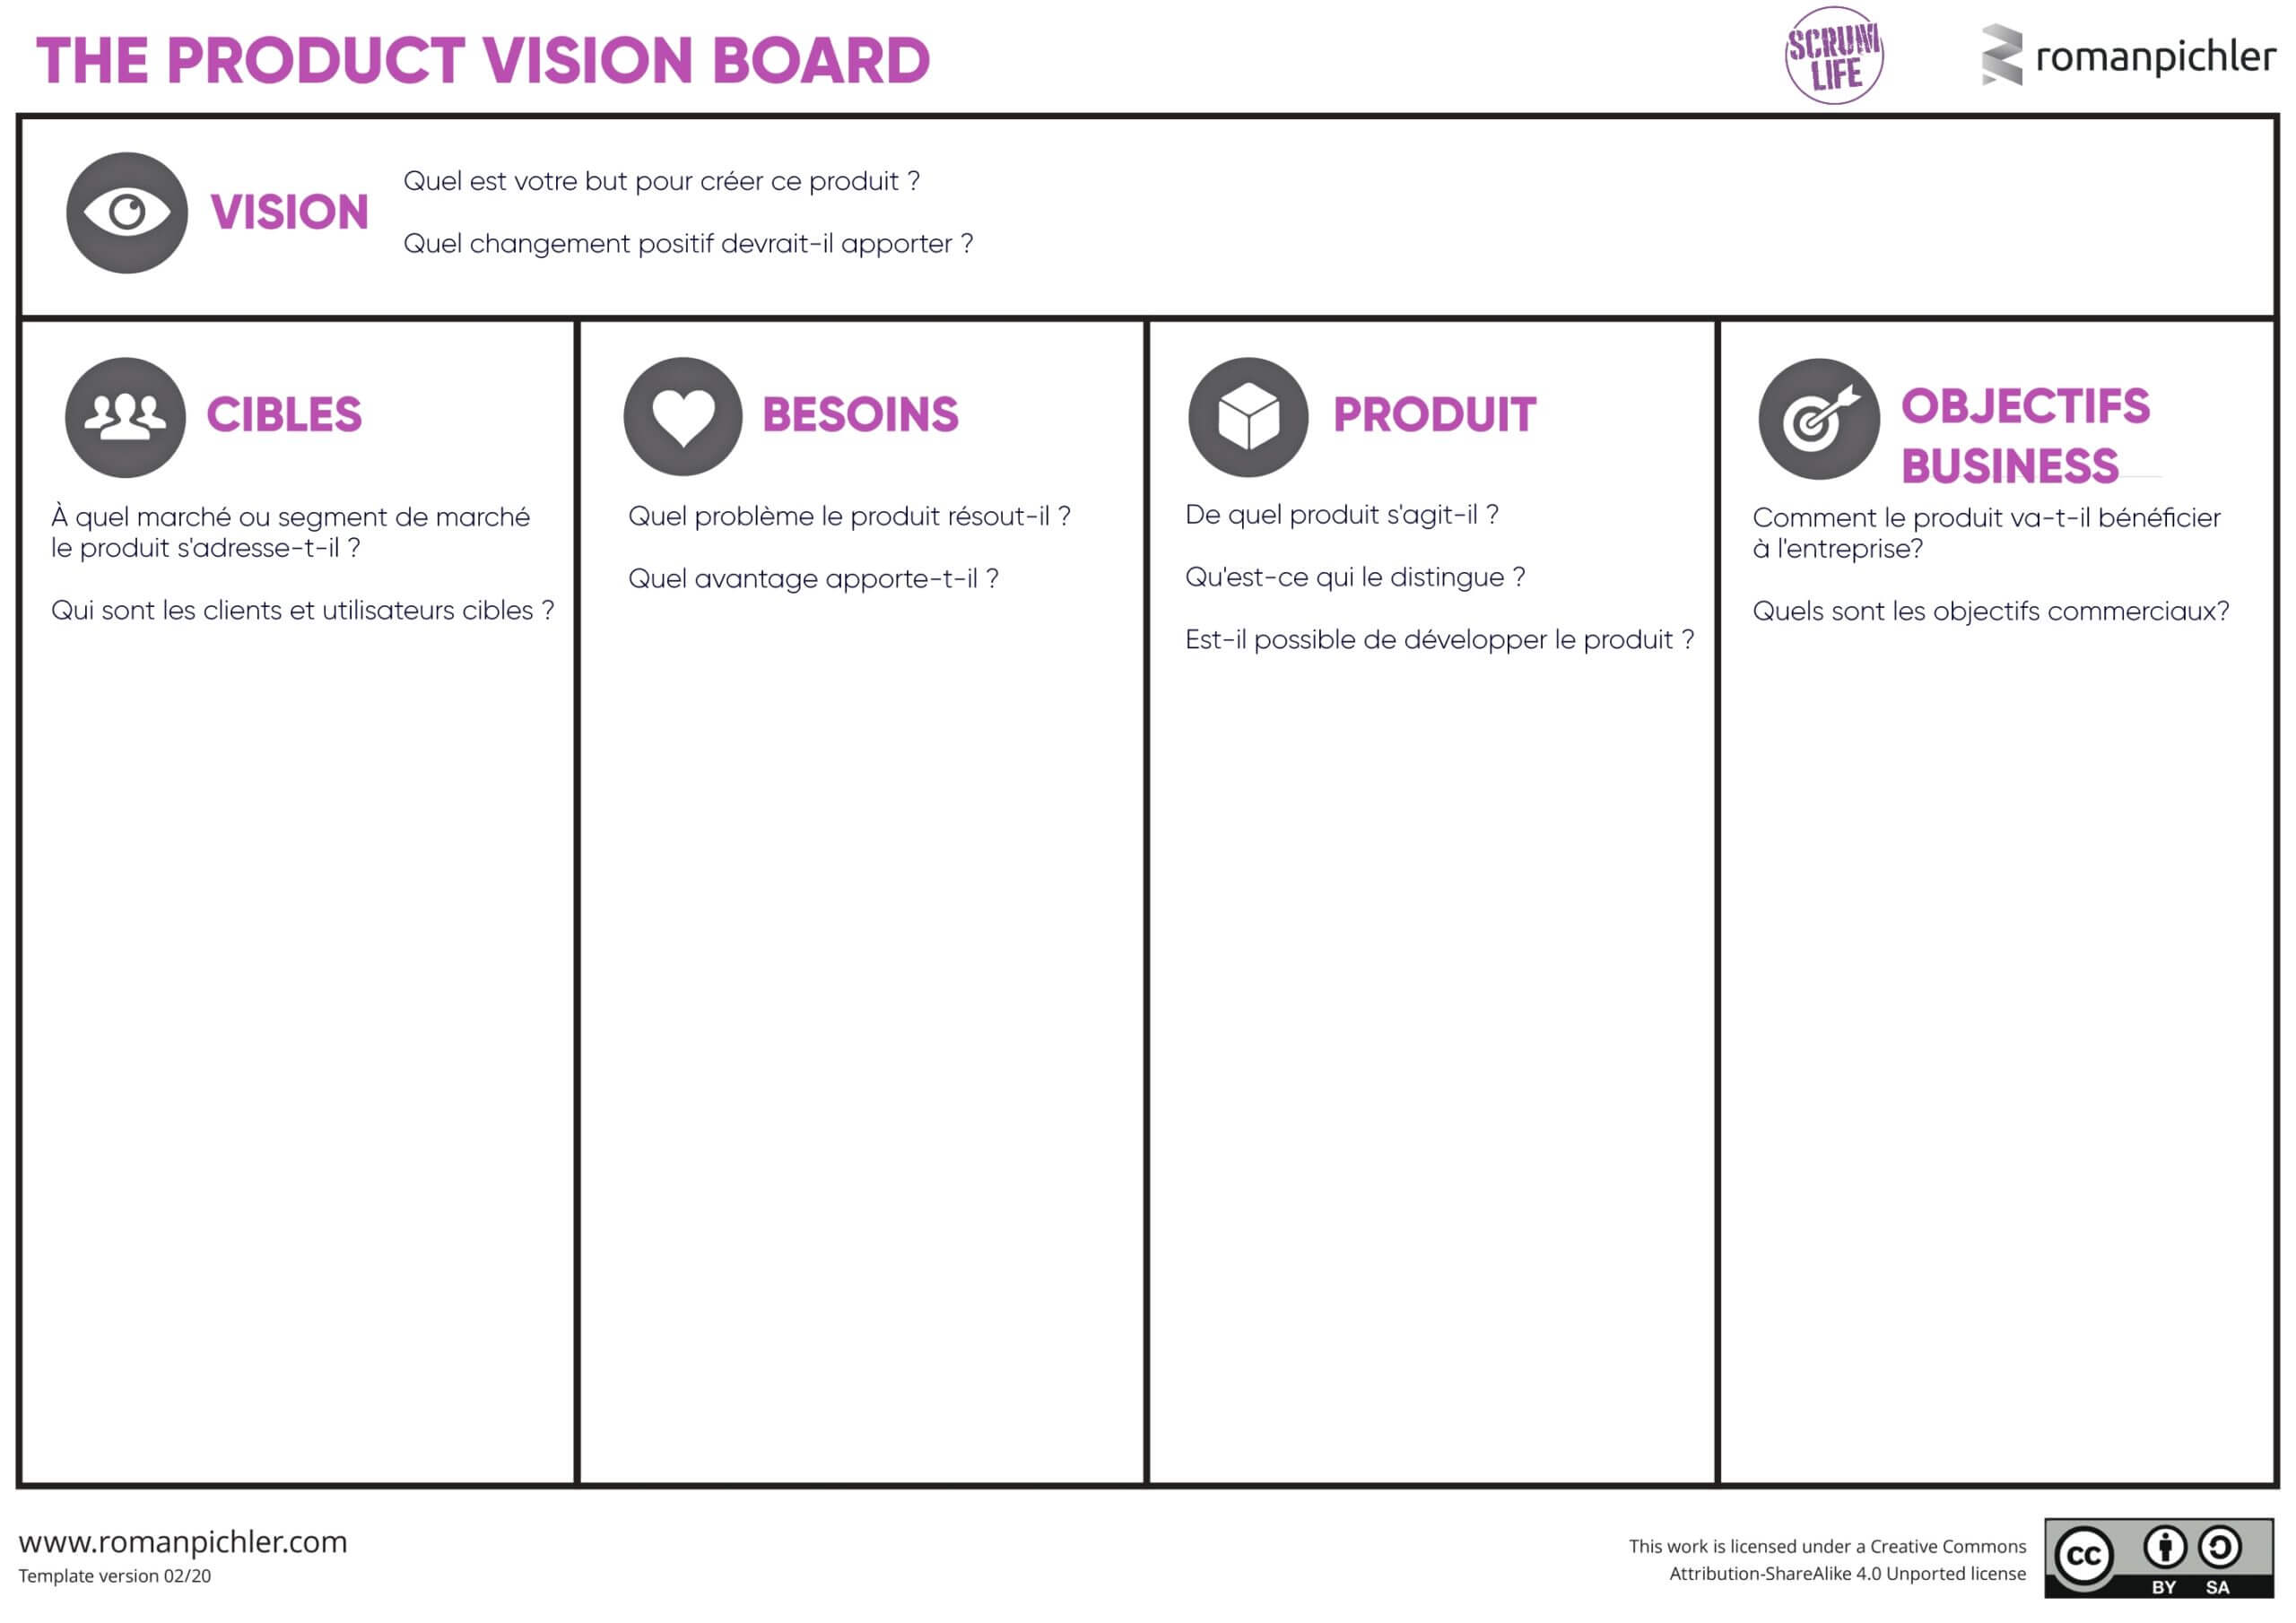 The_Product_Vision_Board_Scrum_Life